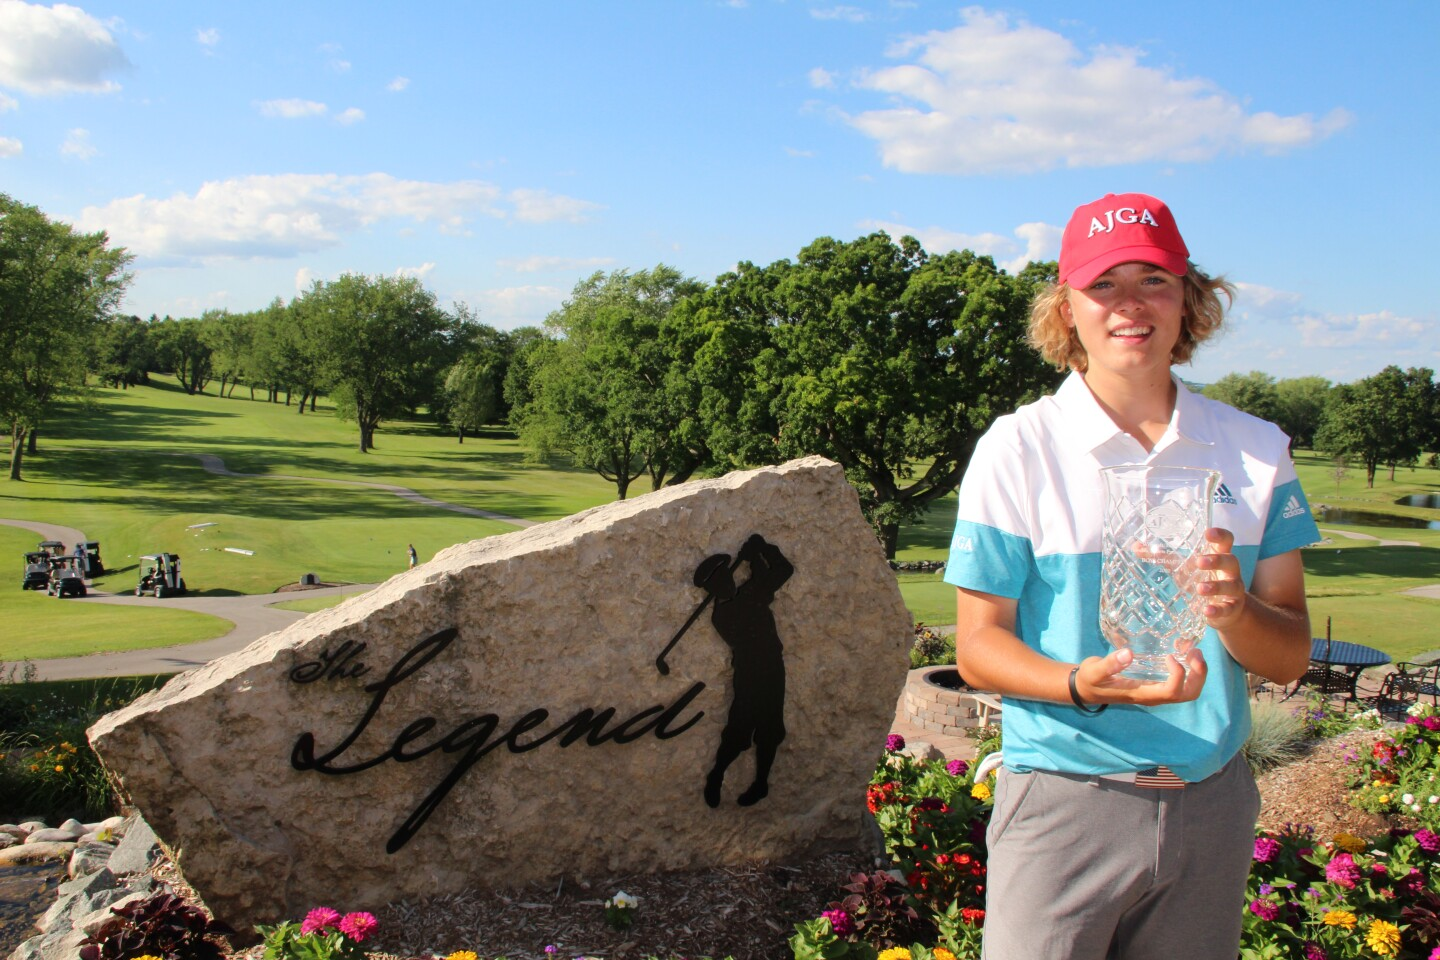 Champion Braeden Sladek-2020- WinCraft McArthur Towel & Sports Future Legends.JPG